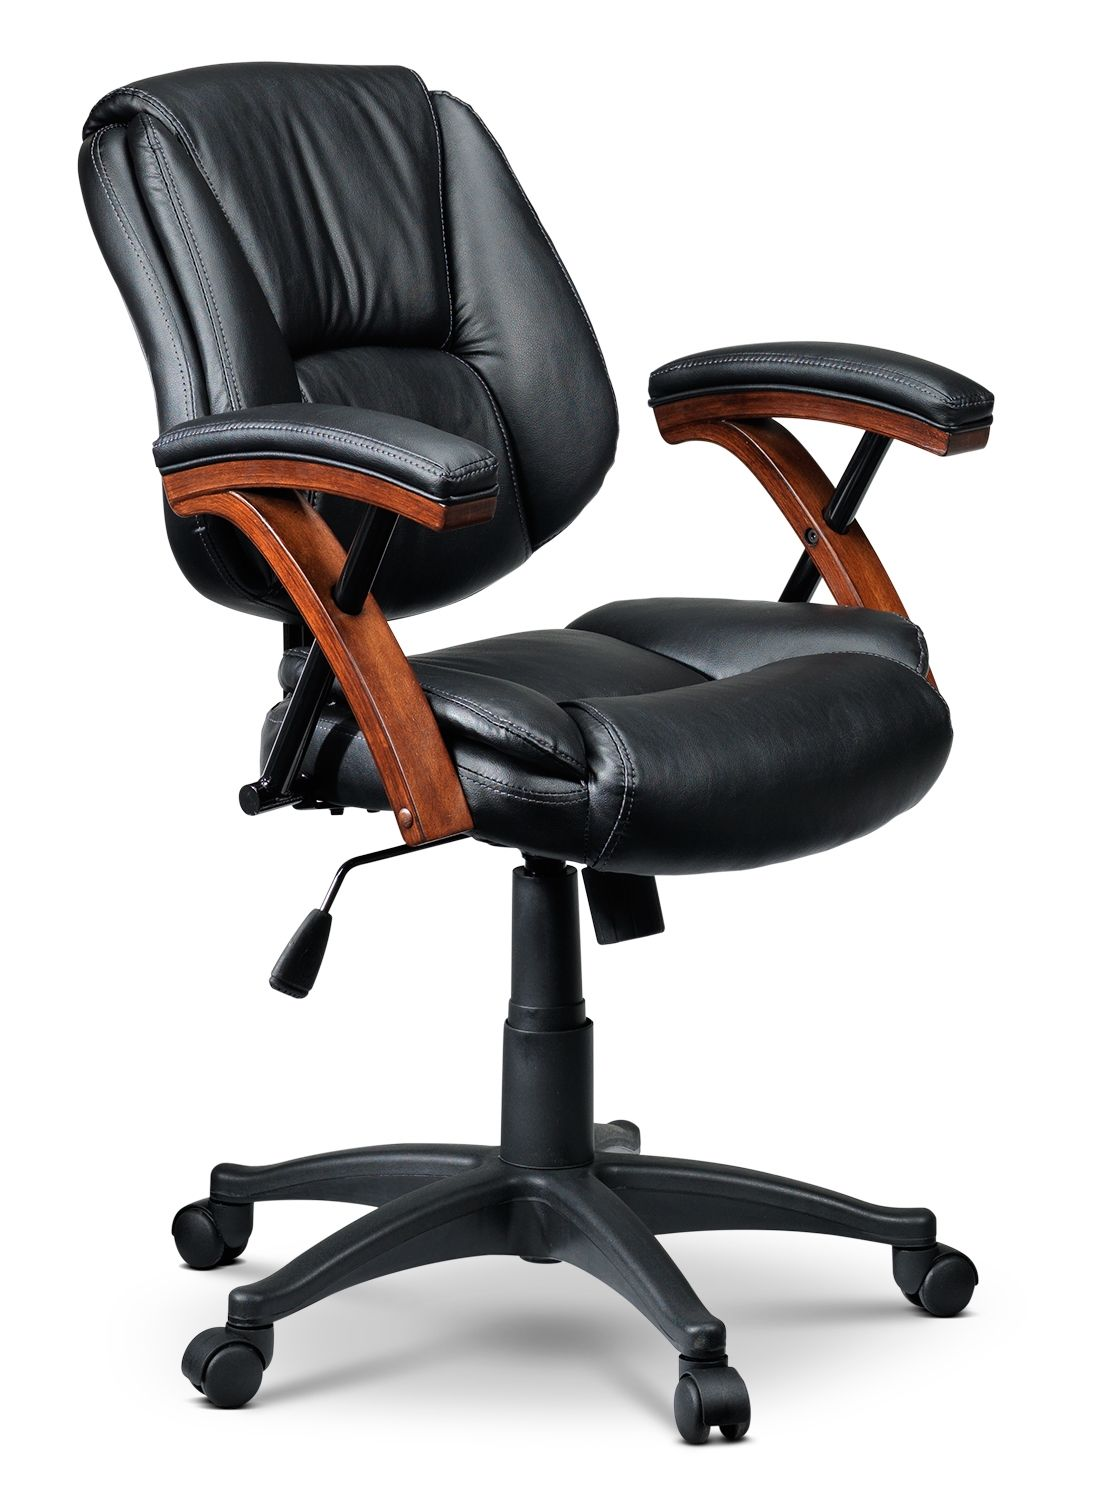 Kilbourn Upholstery Office Chair